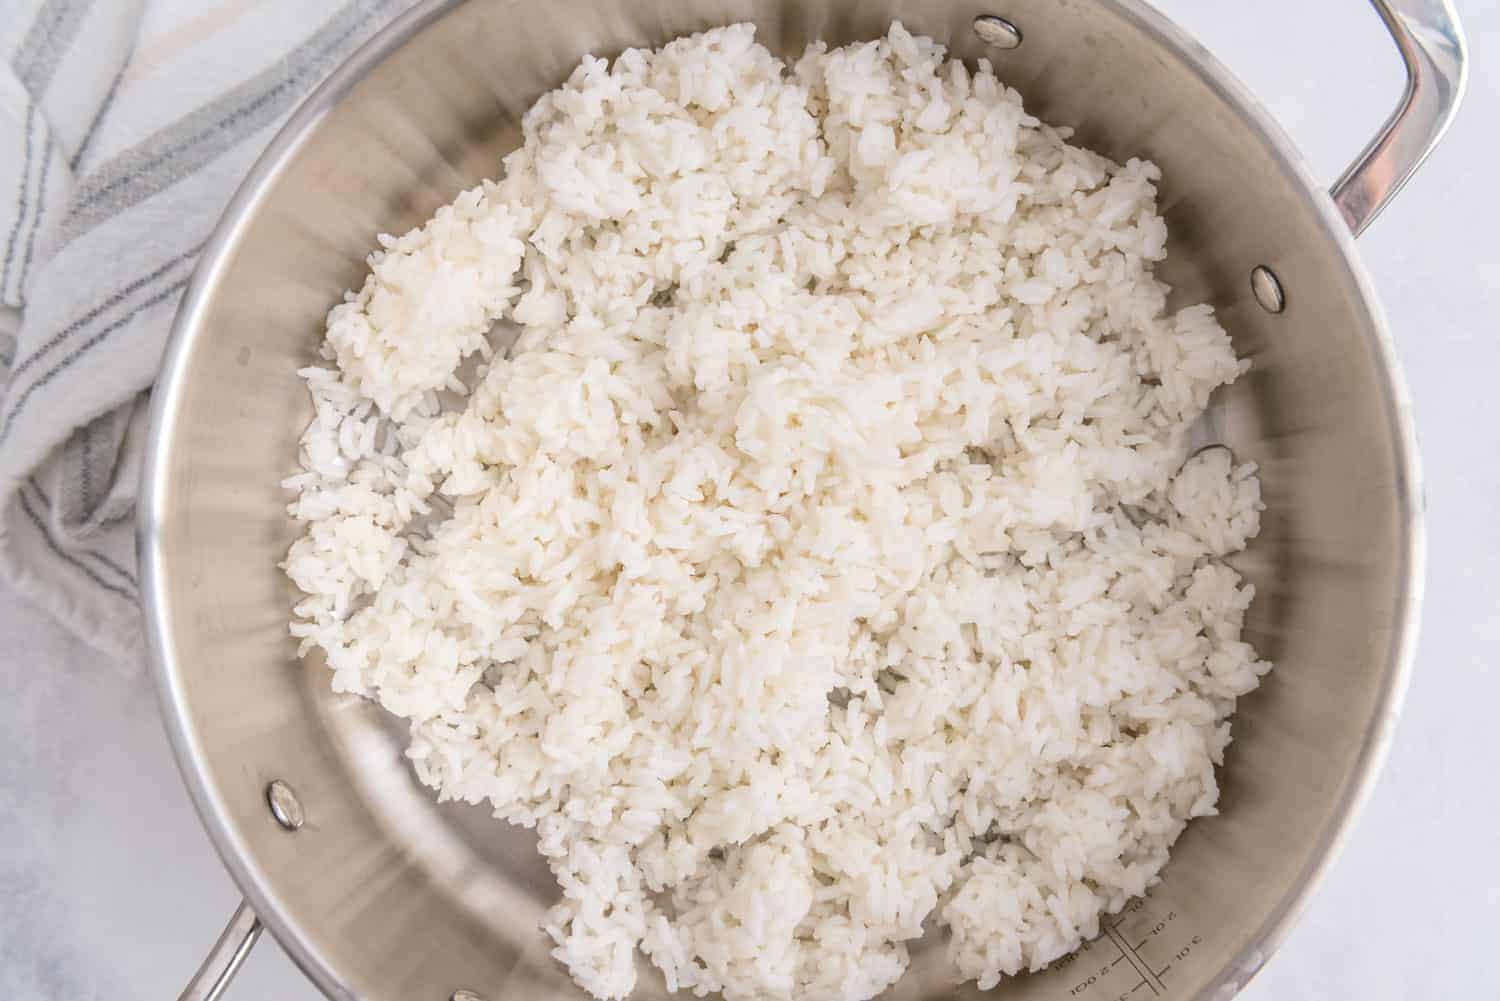 White rice in a stainless steel skillet.